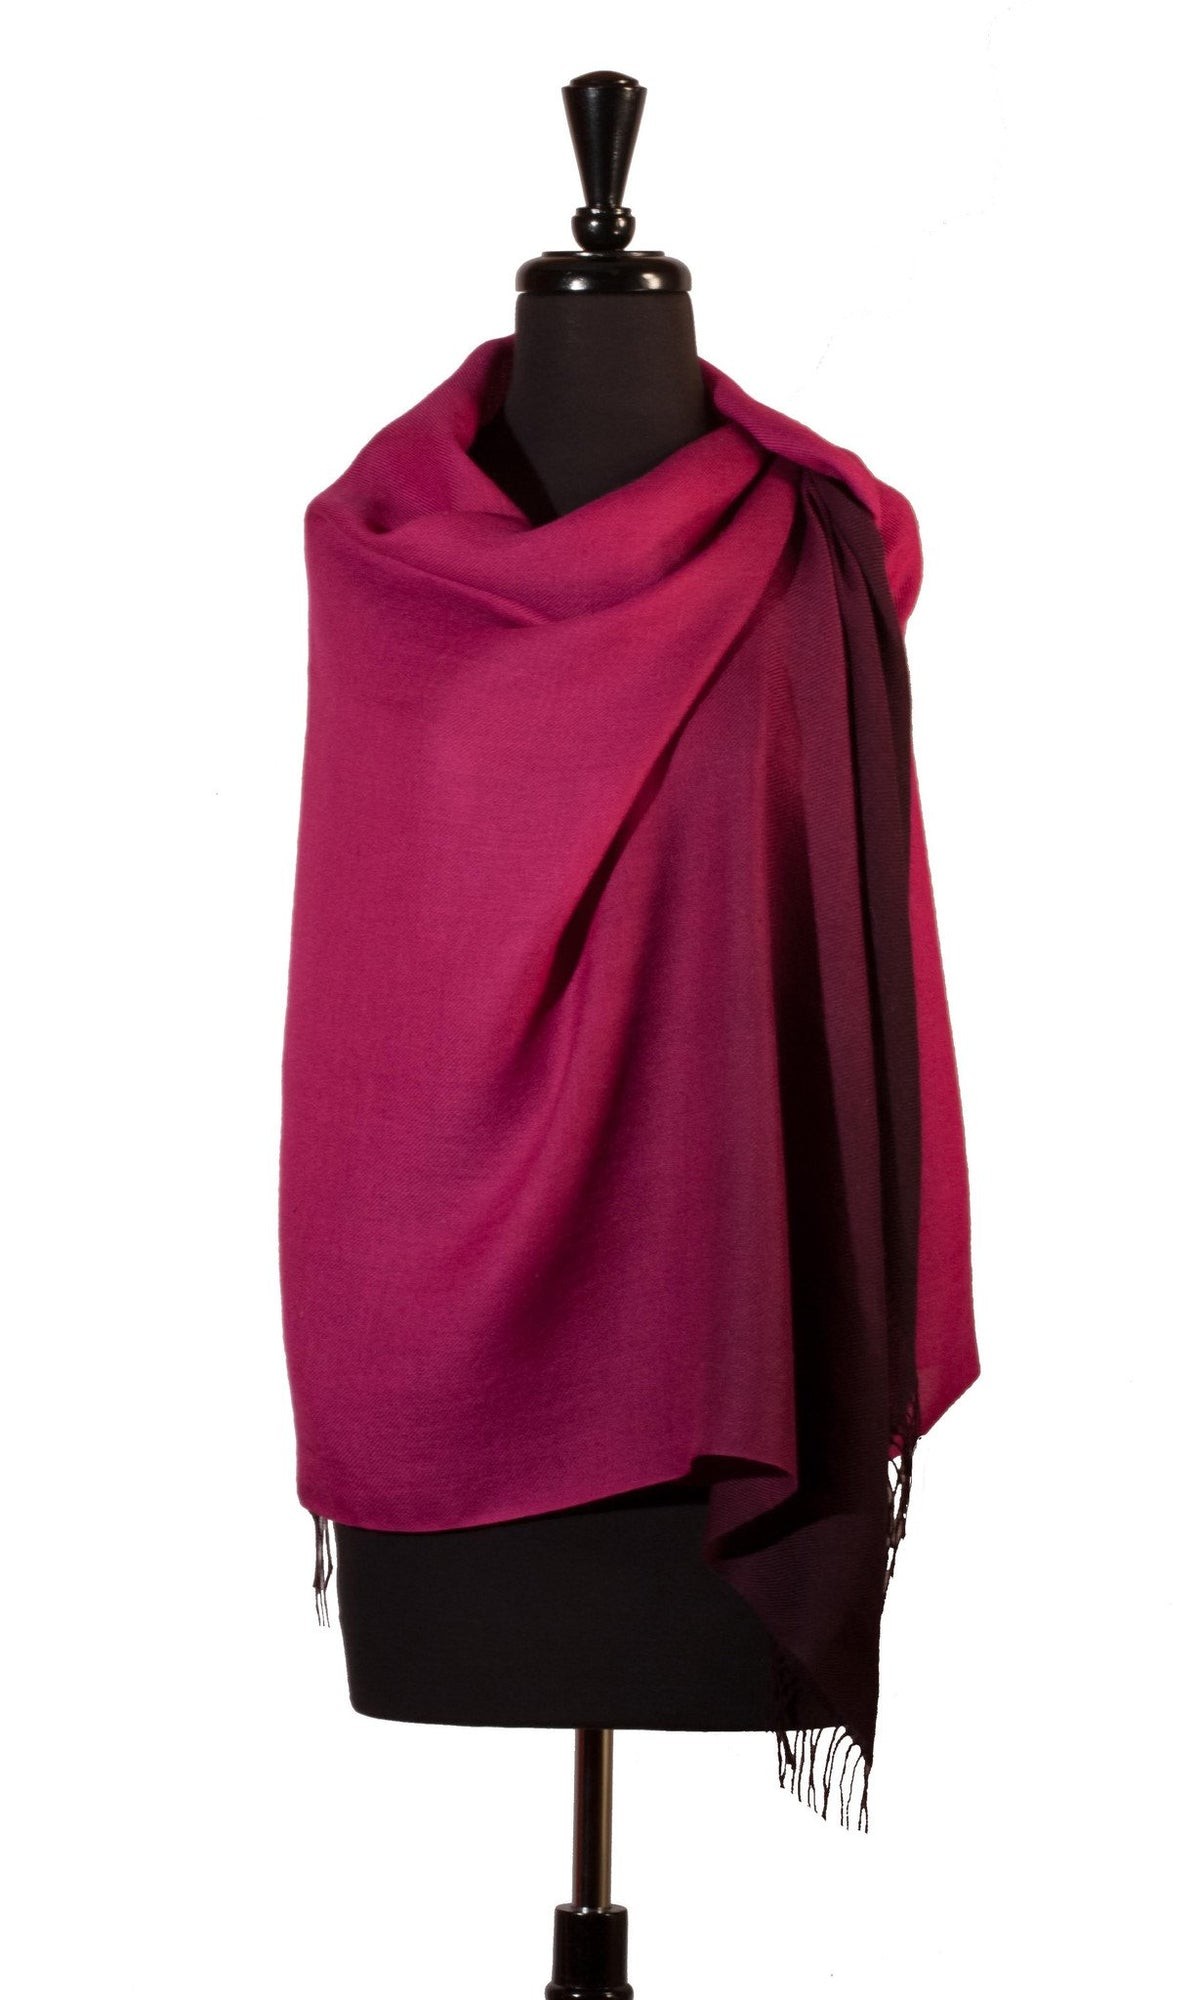 Shawl Baby Alpaca & Silk in Two-Tone Degrade - Magenta - Qinti - The Peruvian Shop